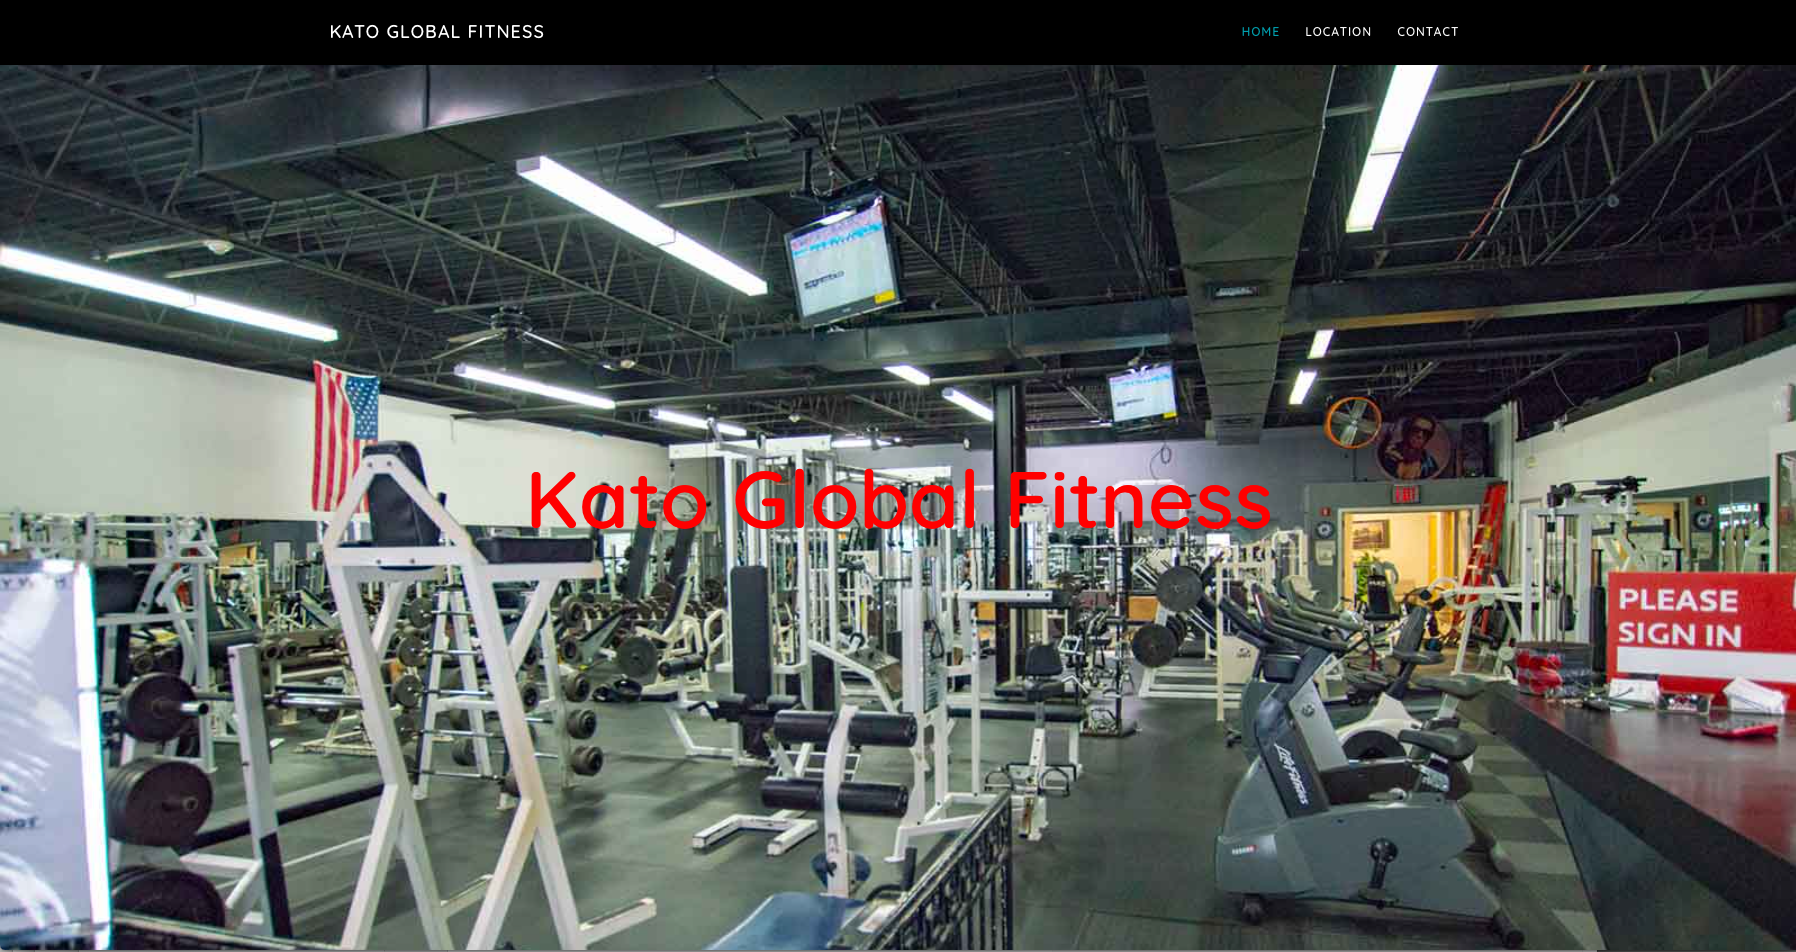 Kato Global Fitness Website